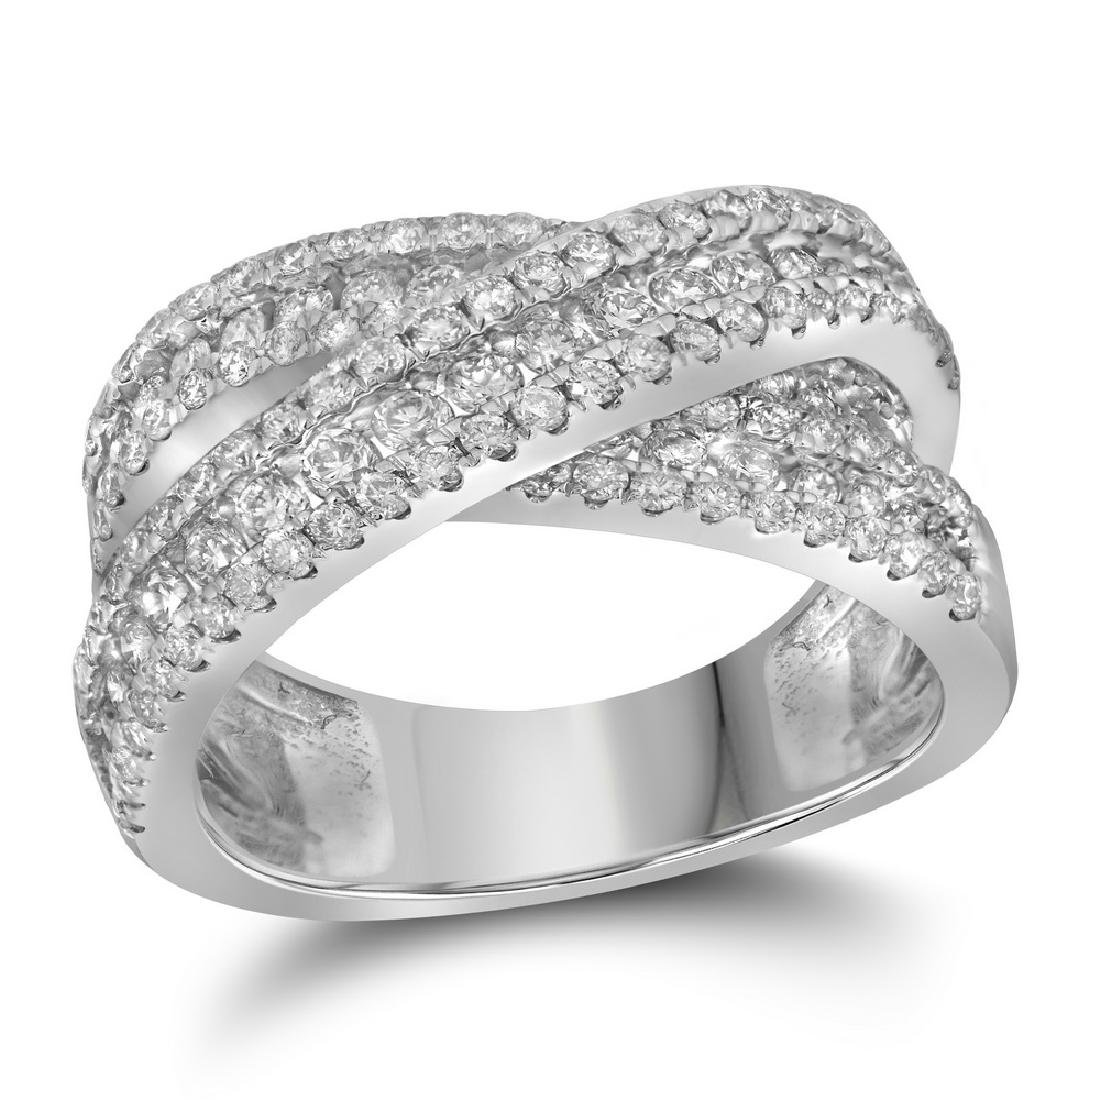 1.93 CTW Pave-set Diamond Crossover Cocktail Ring 14KT